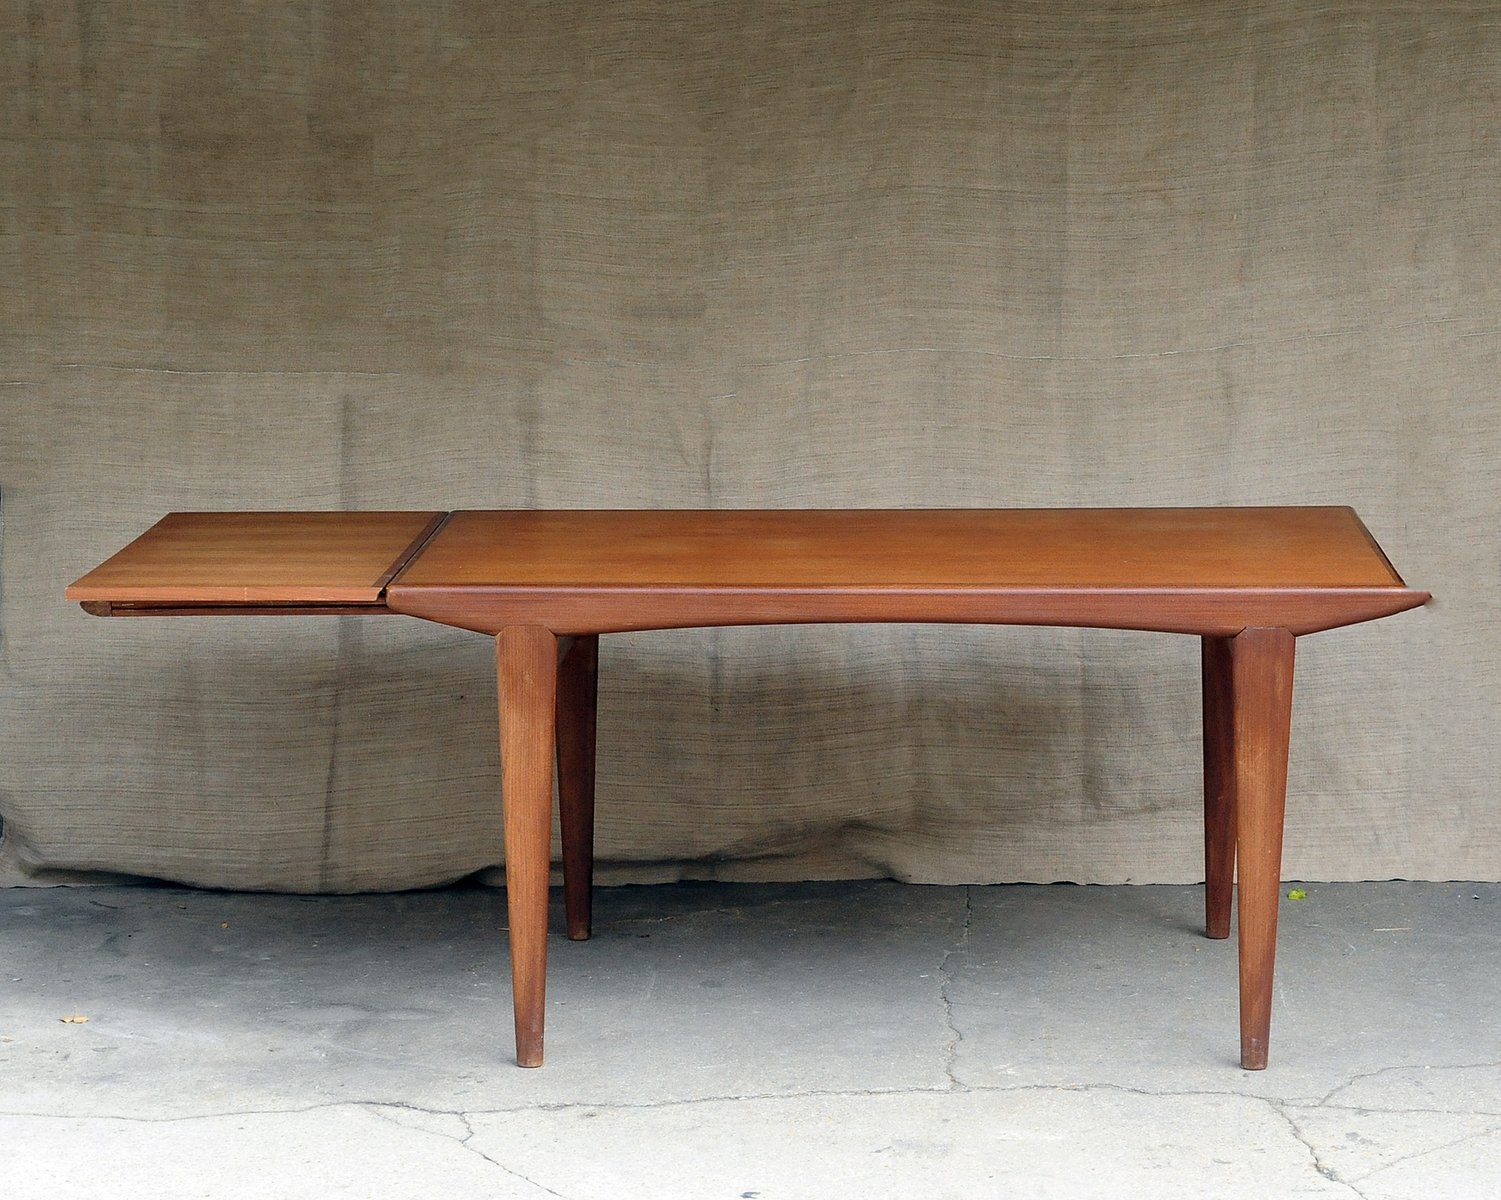 Vintage Teak Dining Table for sale at Pamono : vintage teak dining table 3 from www.pamono.com size 1500 x 1200 jpeg 204kB